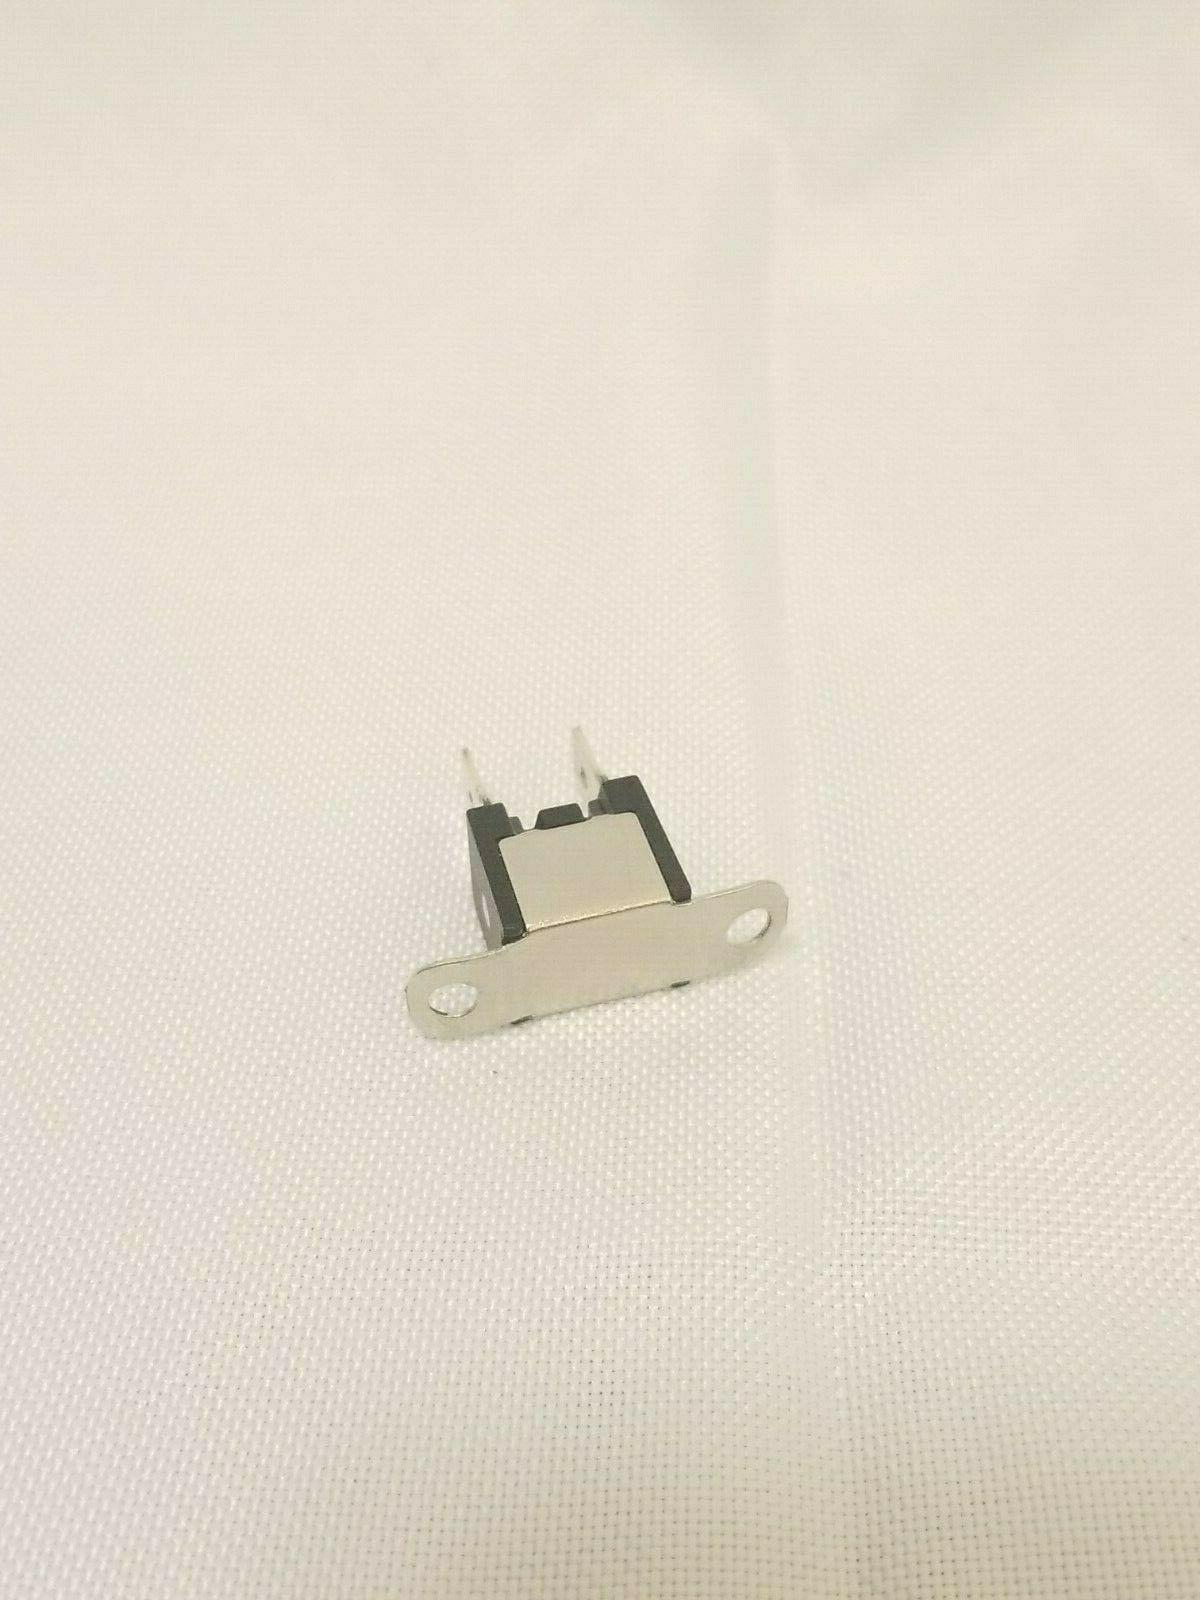 Sharp Oven Thermal Fuse Thermo DM150H